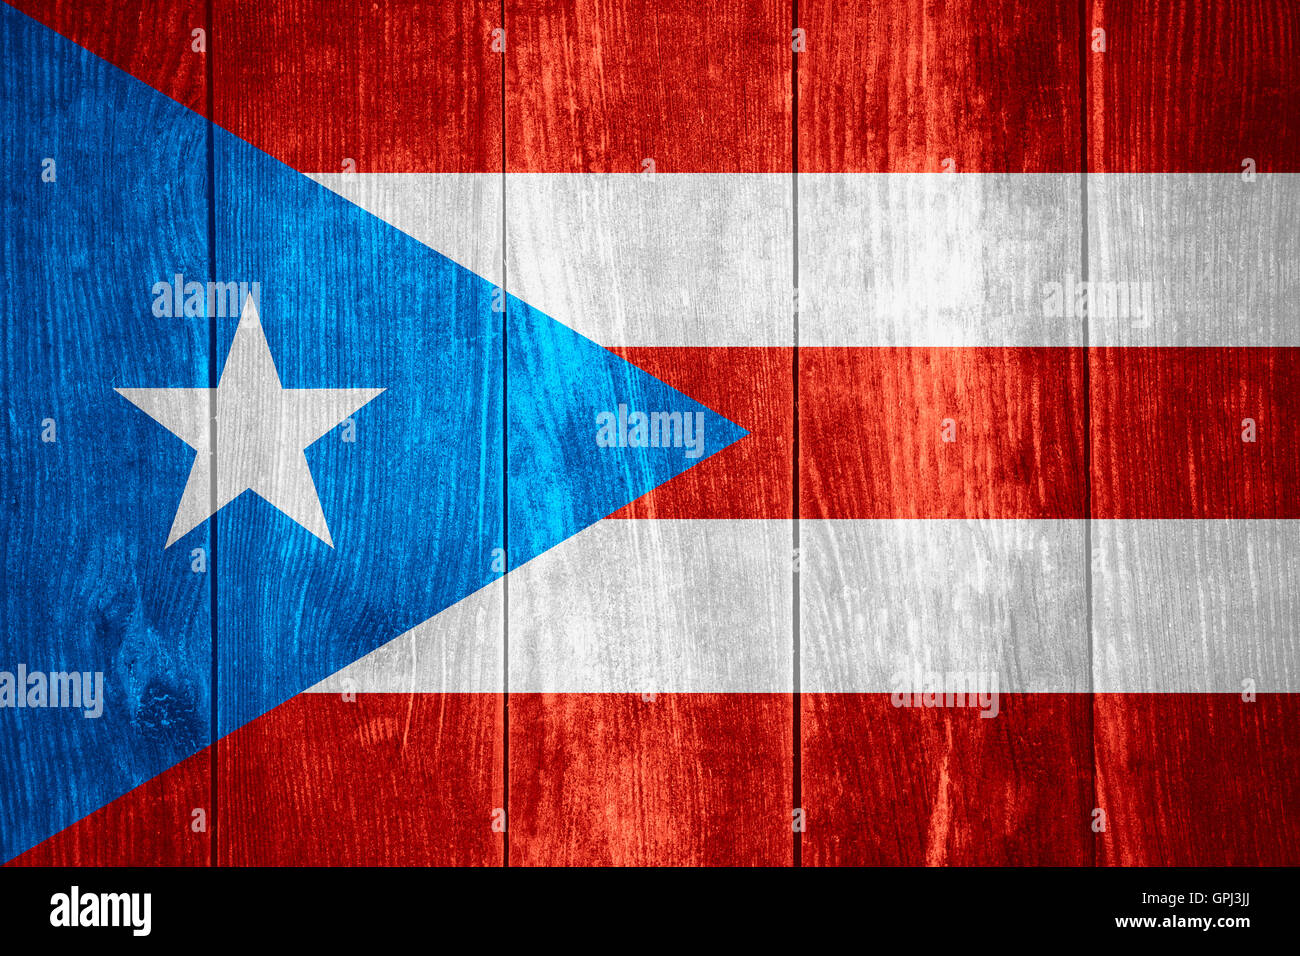 Flag of puerto rico or puerto rican banner on wooden background flag of puerto rico or puerto rican banner on wooden background biocorpaavc Images